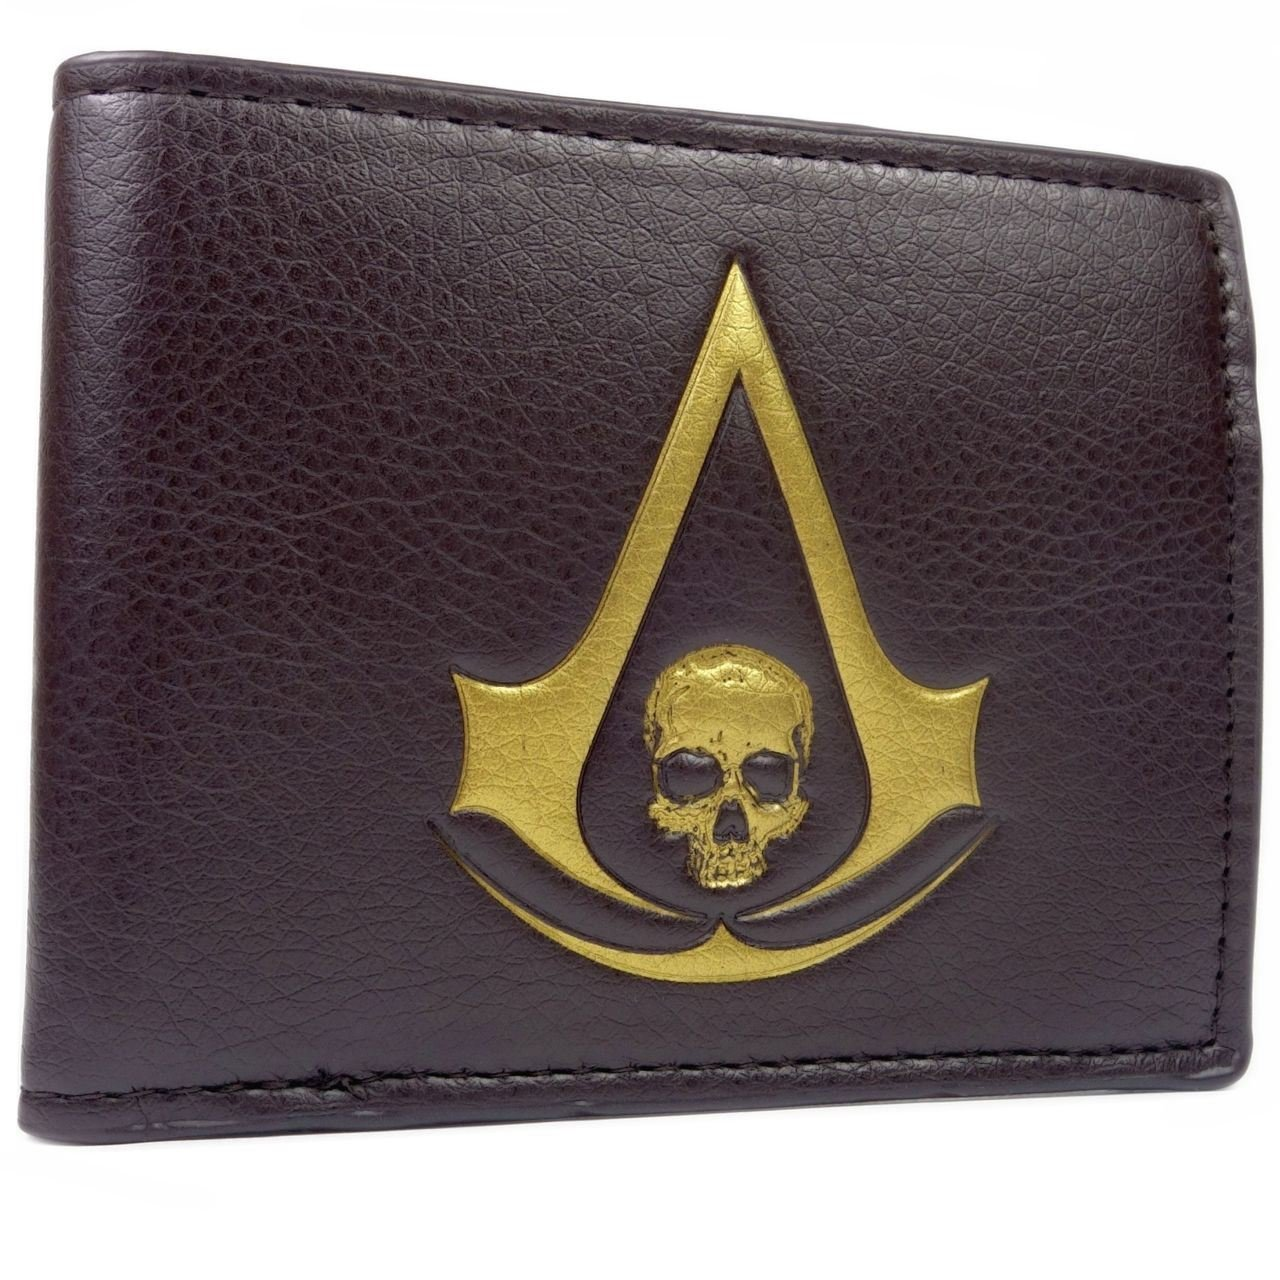 Cartera de Ubisoft Assassins Creed Black Flag Multicolor 27100